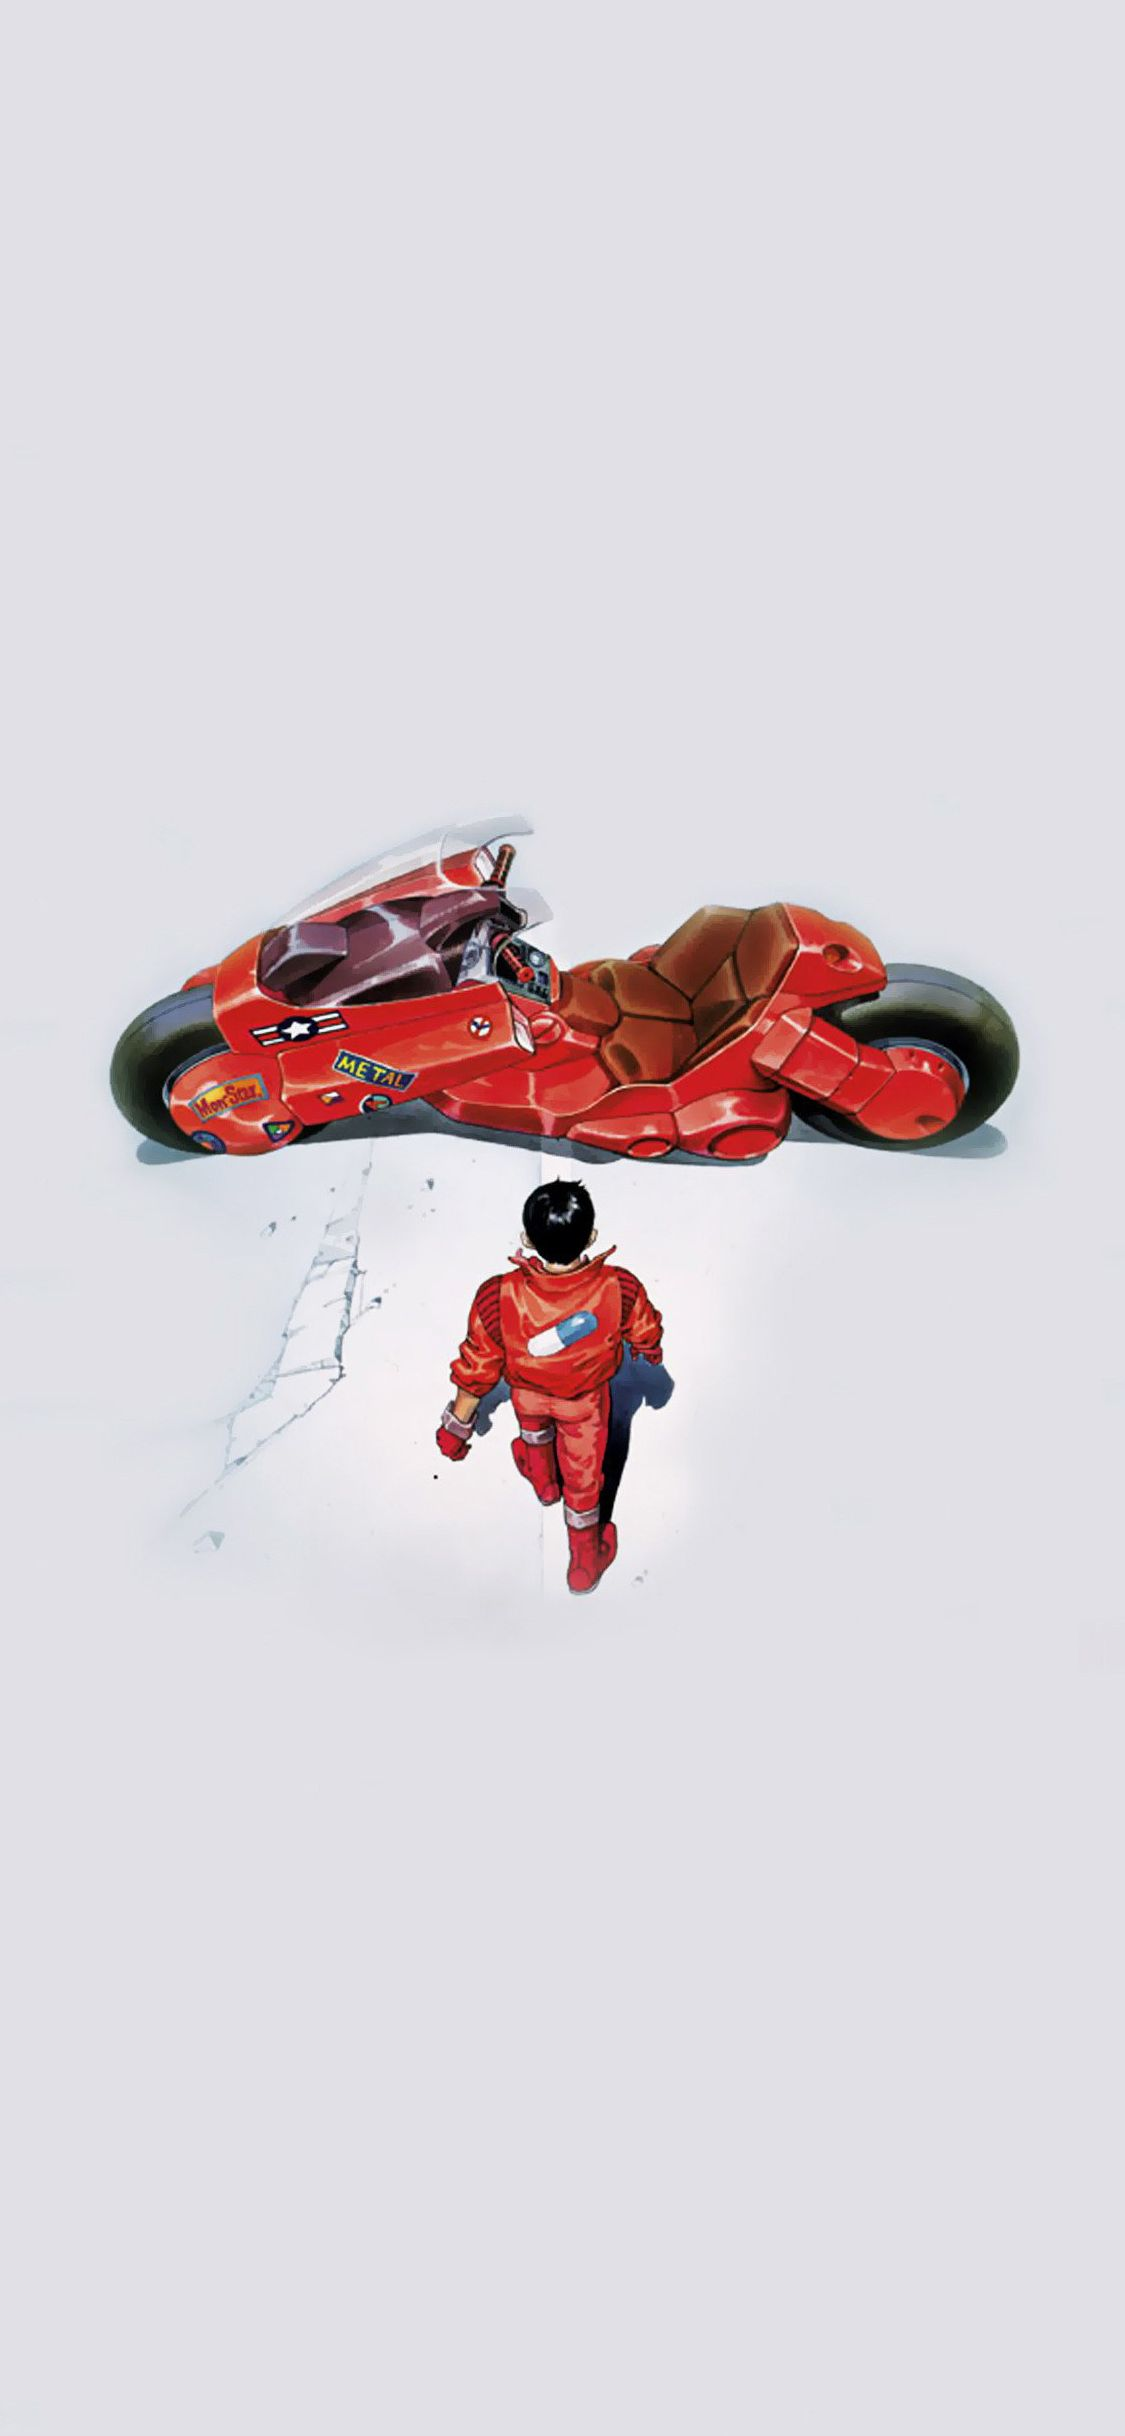 Hey Guys I Made This Wallpaper From He Anime Movie Akira Which I Couldn T Find Any Good One Iphone Wallpaper For Guys Best Iphone Wallpapers Anime Wallpaper